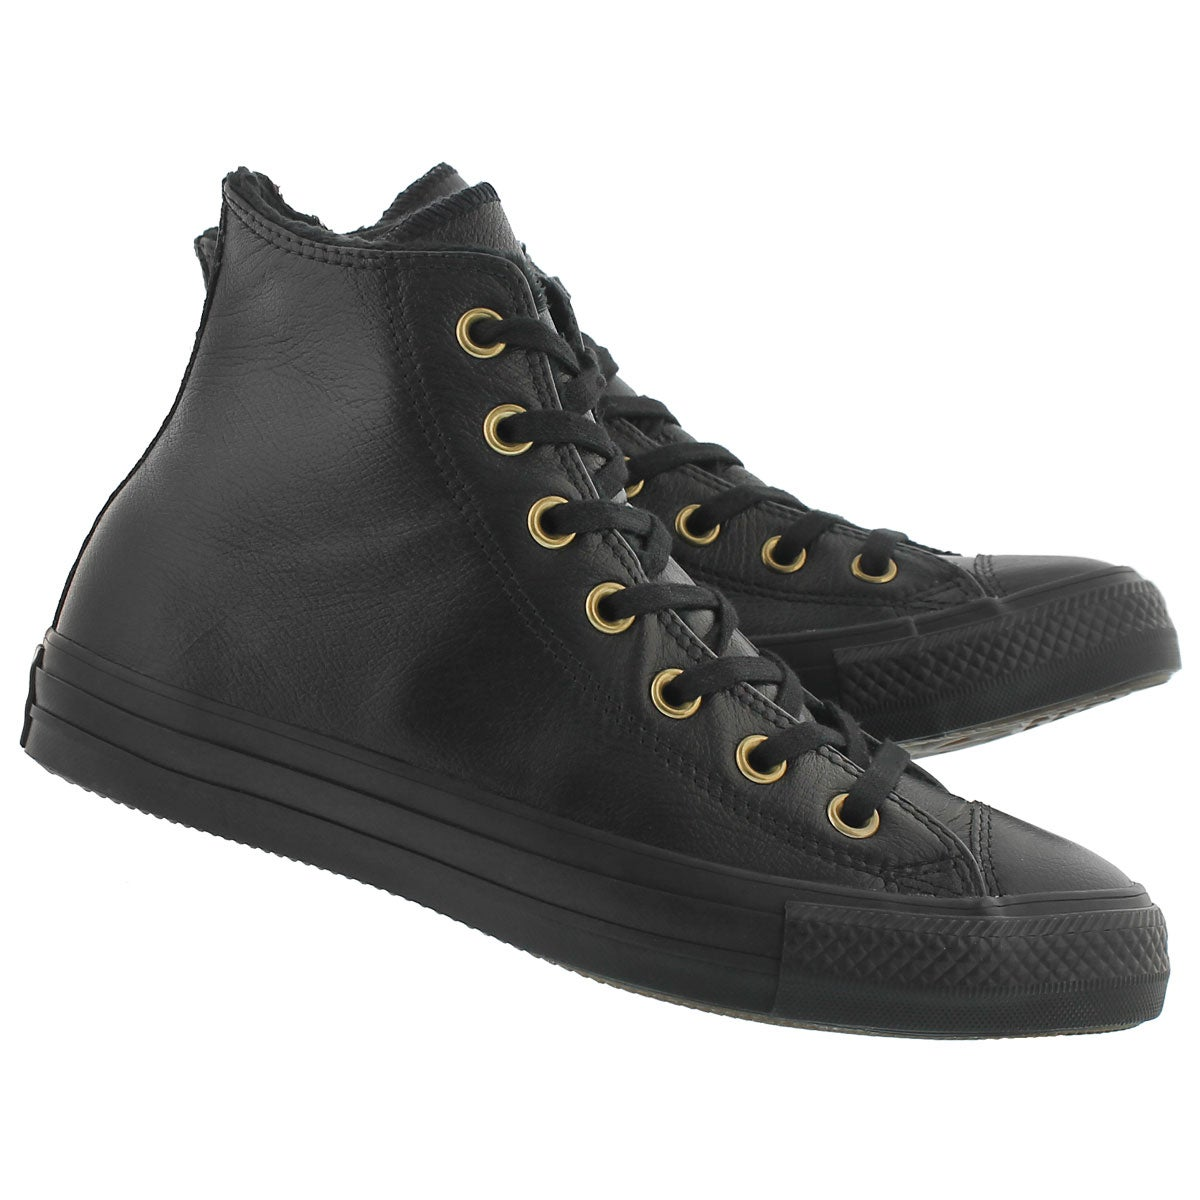 Lds CT All Star blk mono lined hi top